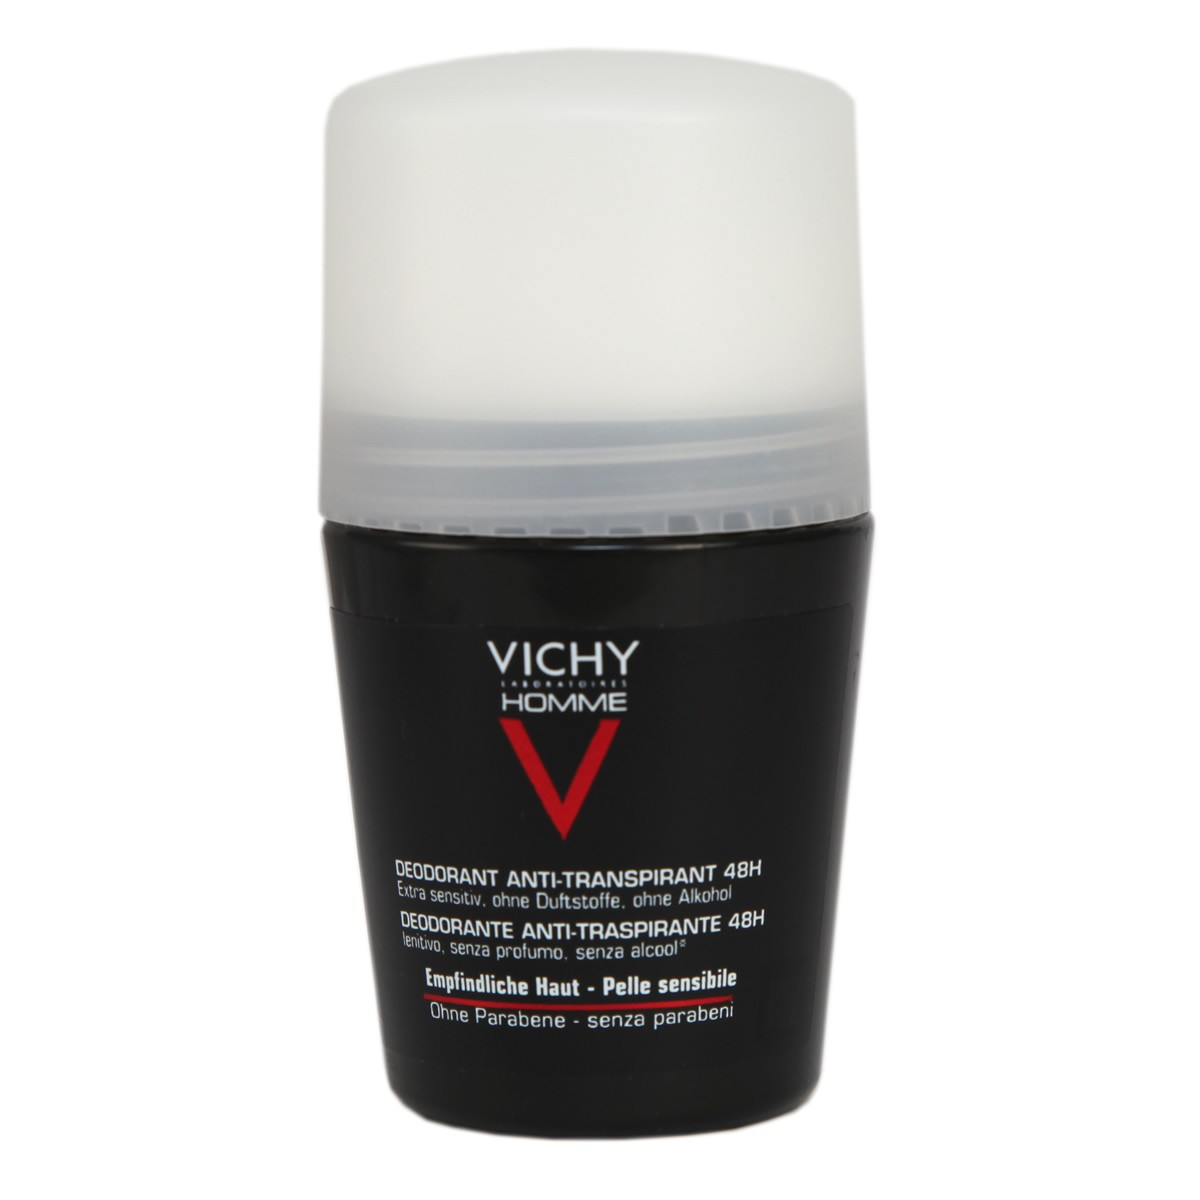 Vichy Homme Deodorant Roll-on 48Hr